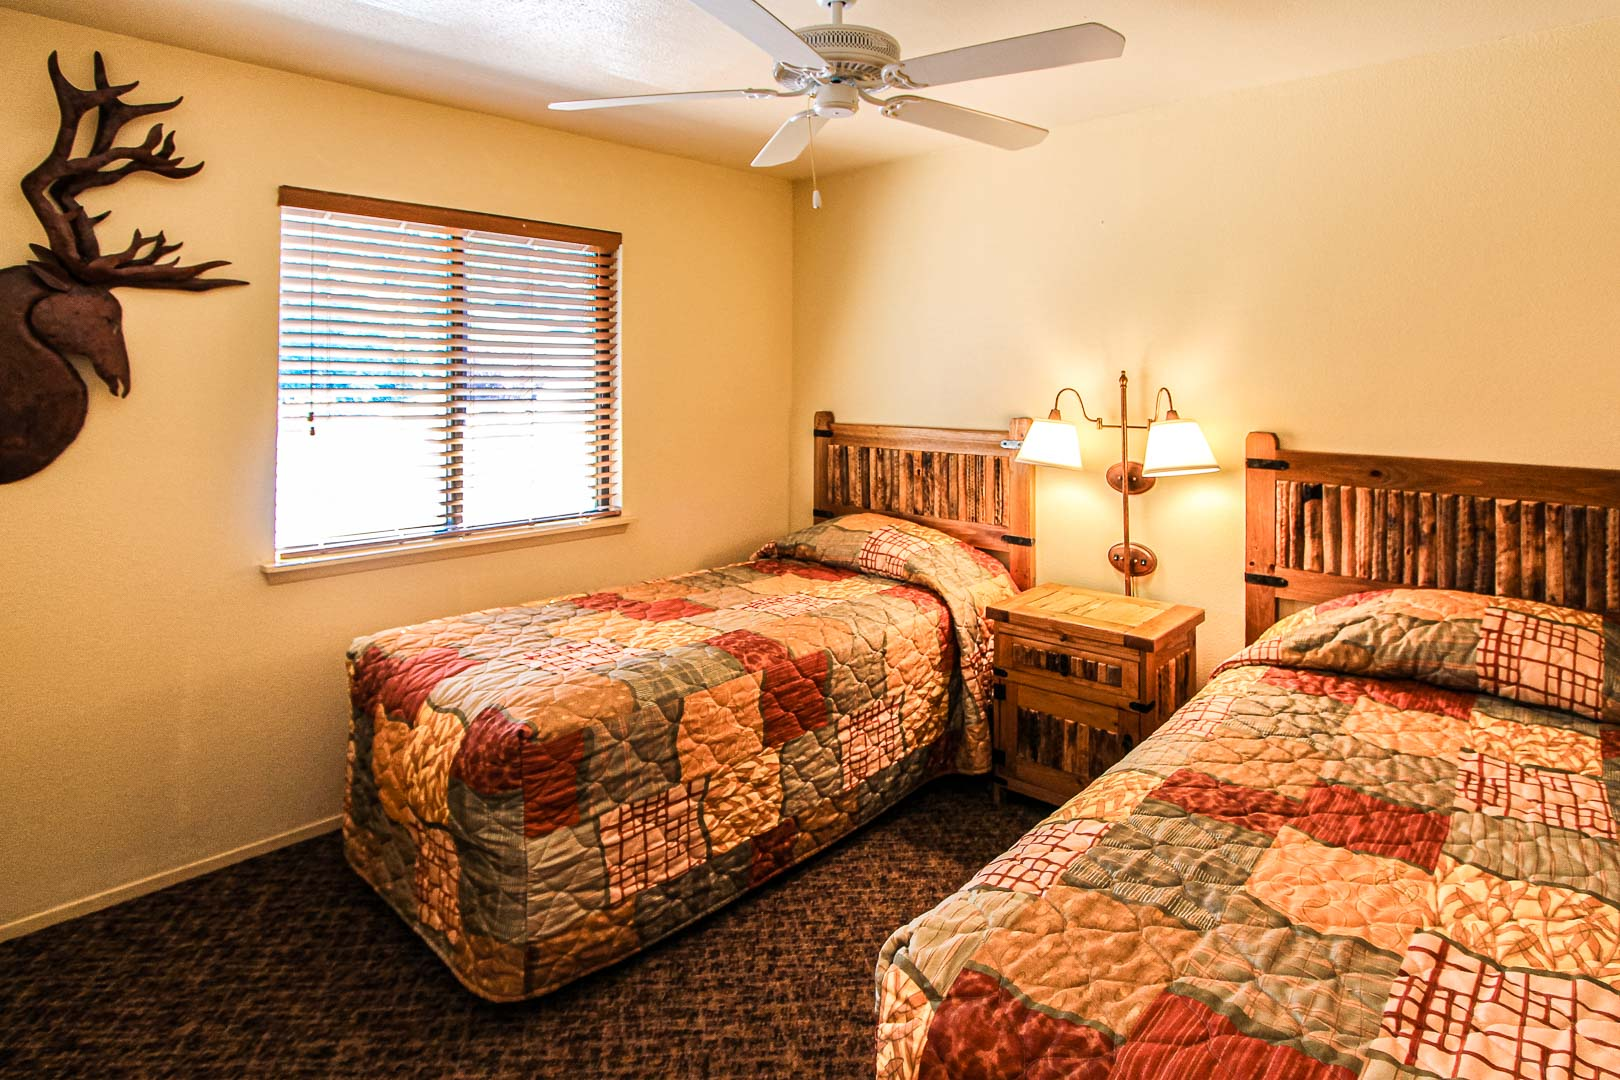 A standard two bedroom unit with double beds at VRI's Crown Point Condominiums in New Mexico.